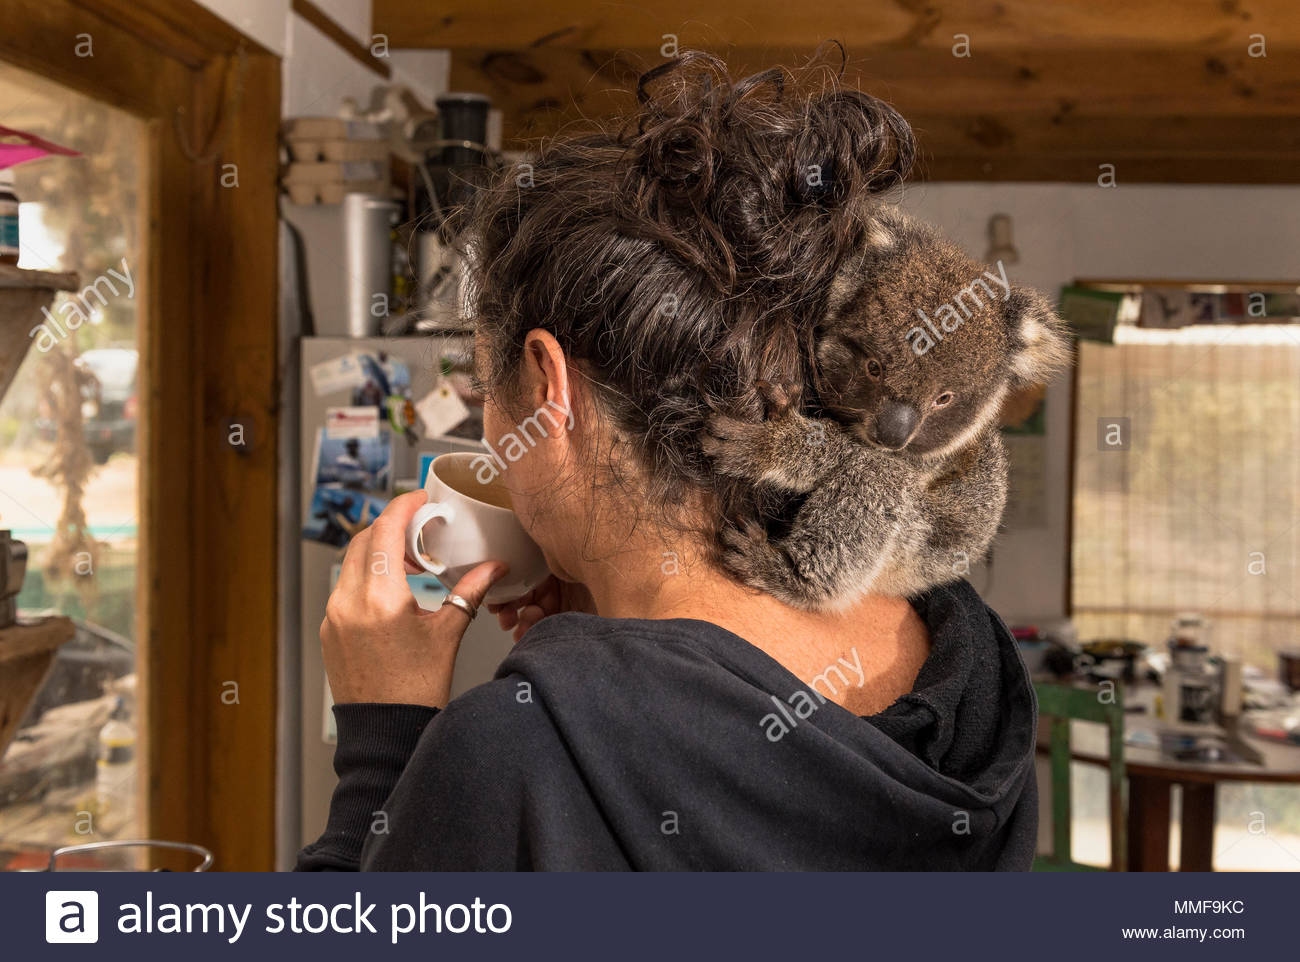 A Veterinary nurse drinks coffee while a baby koala, Phascolarctos cinereus, hangs from her hair. - Stock Image